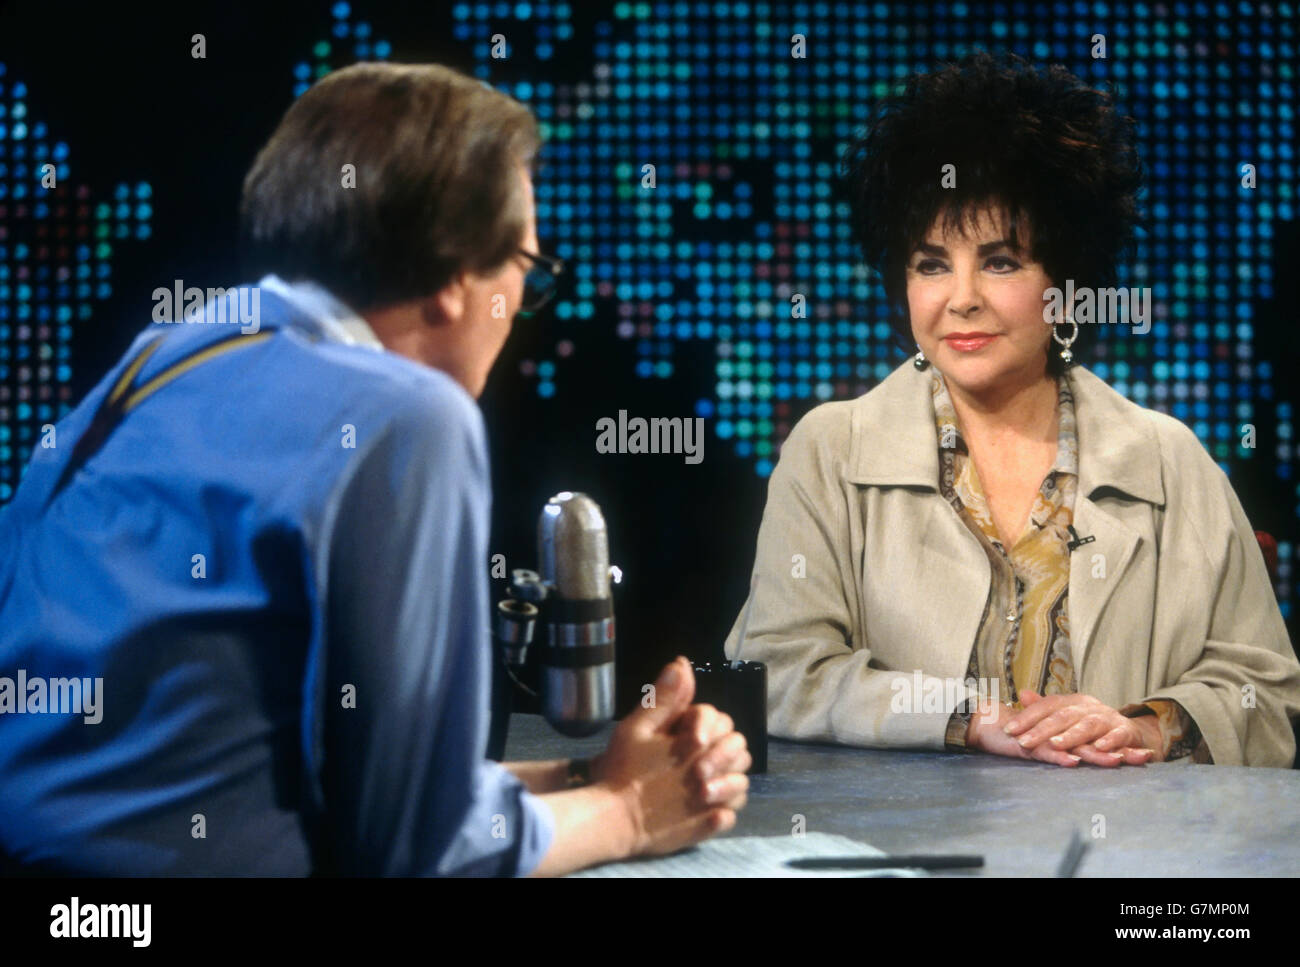 Legendary actress Liz Taylor appears on CNN's Larry King Live television interview show July 22, 1996 in Washington, - Stock Image